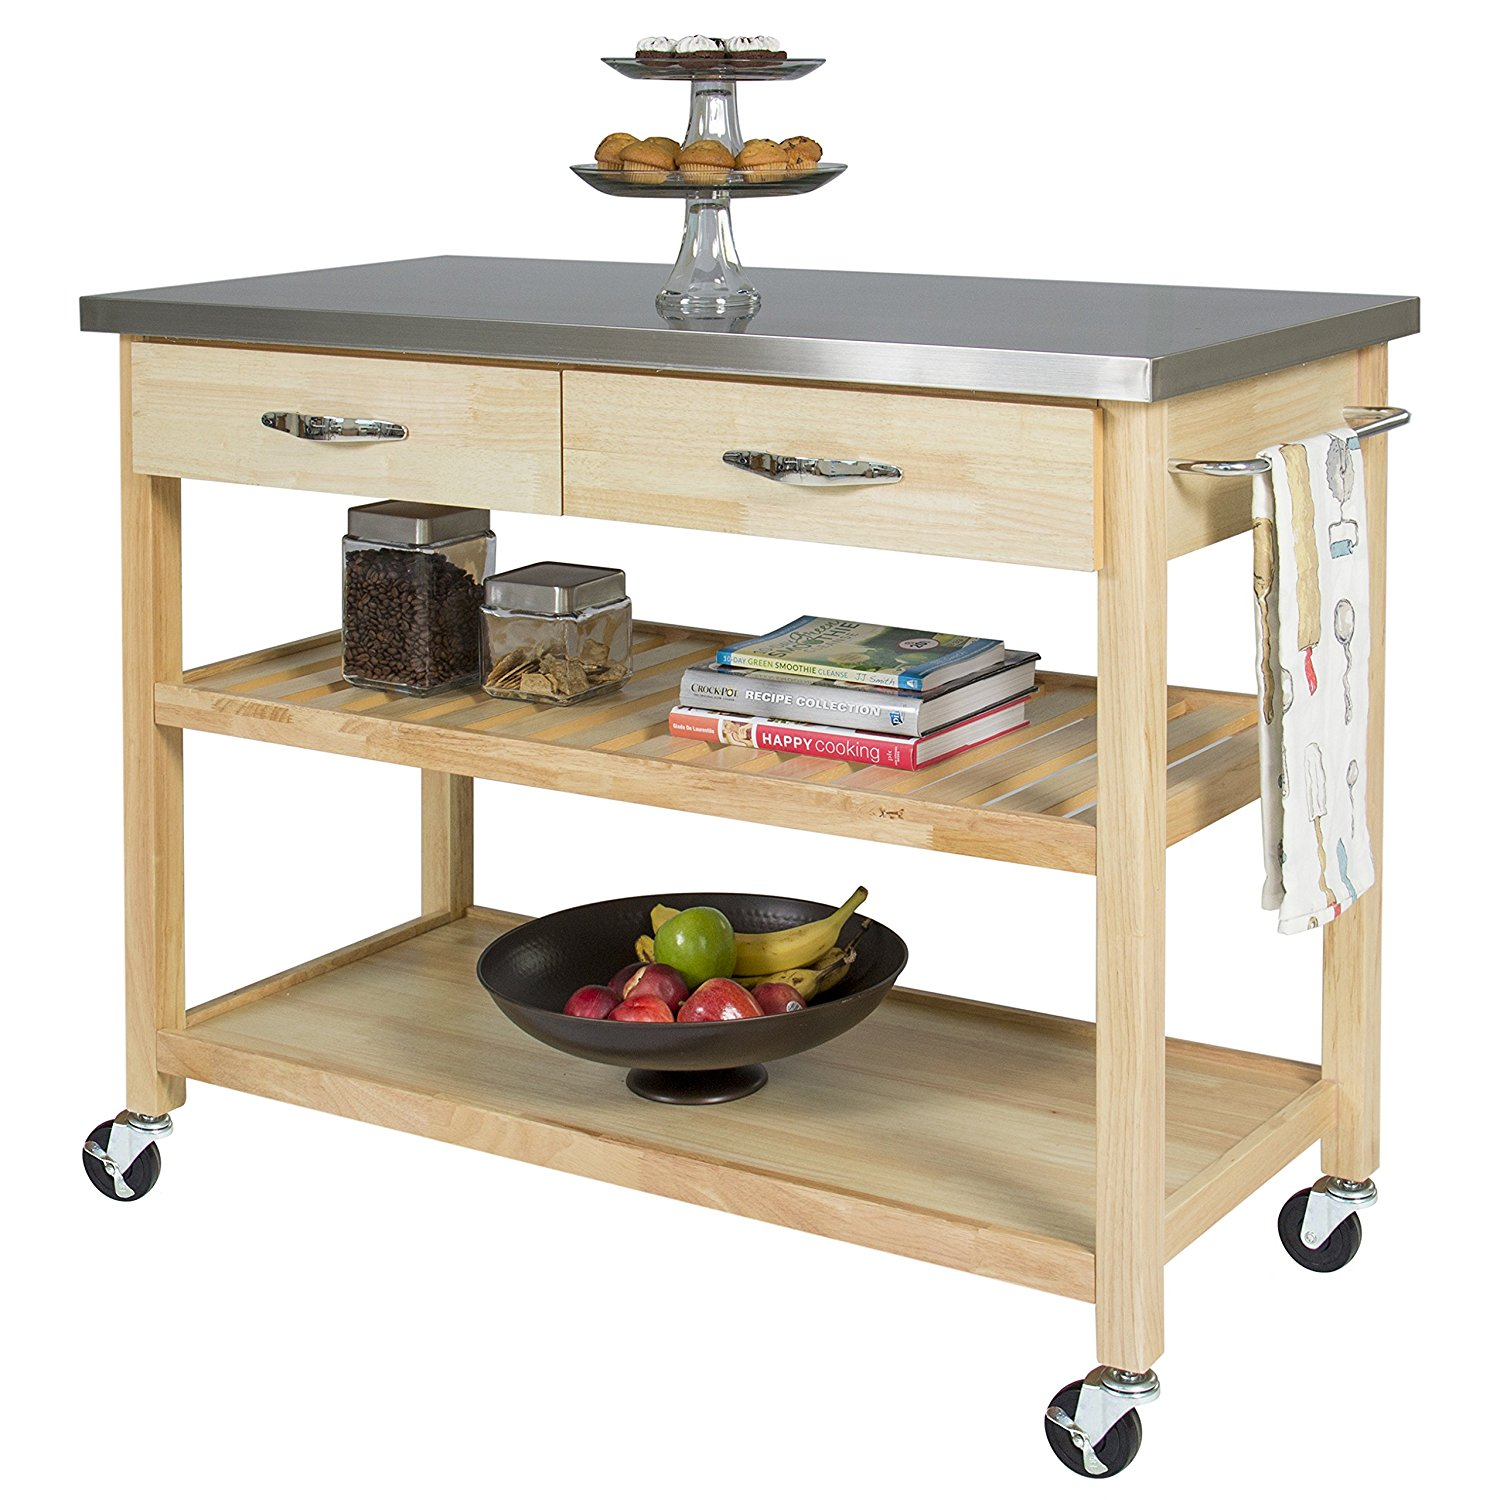 Oak Kitchen Carts And Islands Best kitchen islands and carts best trendy portable kitchen island 2018 top 10 best mobile kitchen carts centers islands utility tables workwithnaturefo